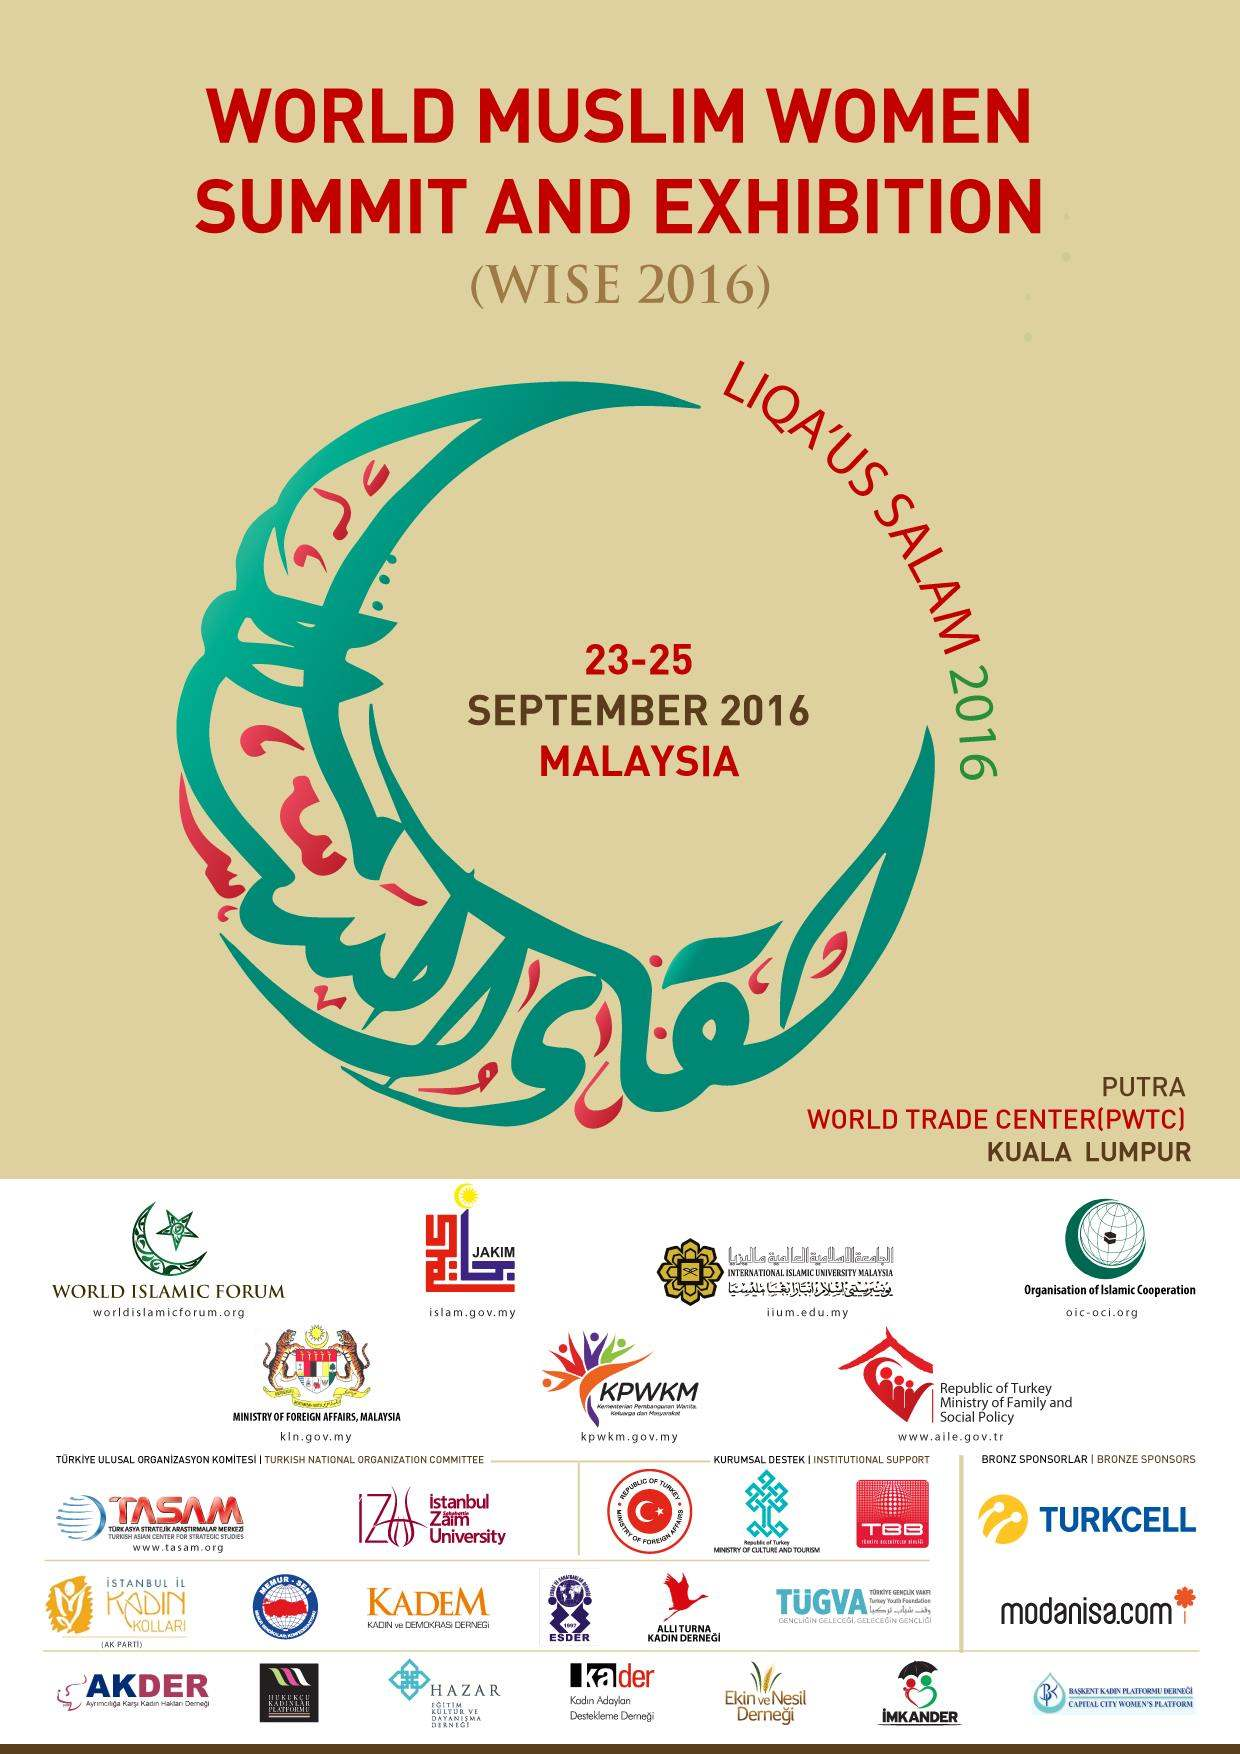 World Muslim Women Summit and Exhibition | WISE 2016